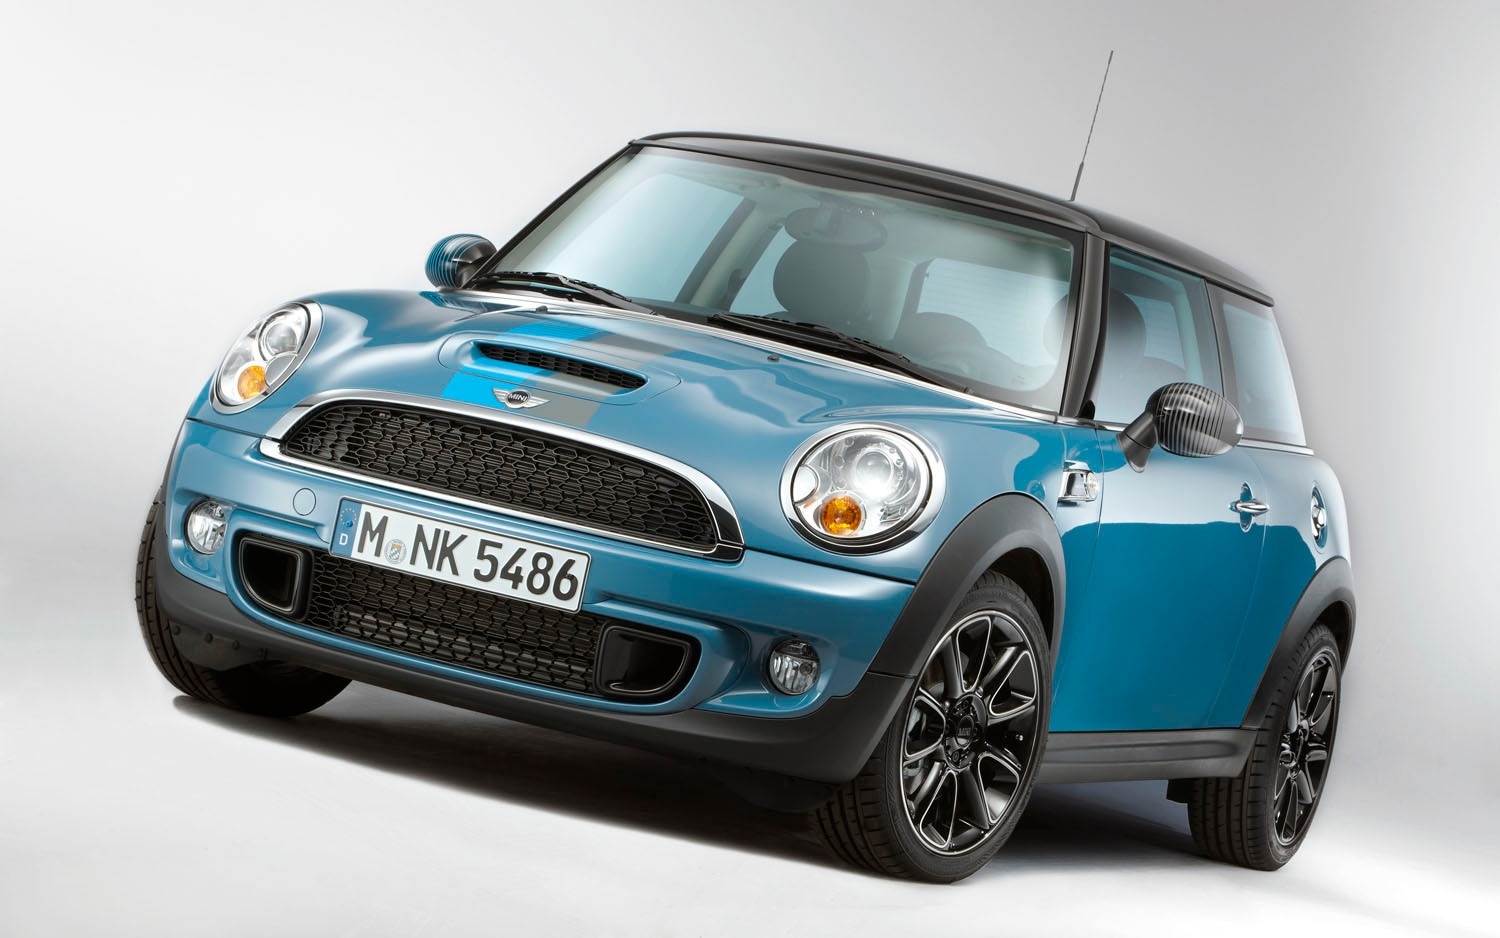 2012 mini cooper s bayswater front three quarter